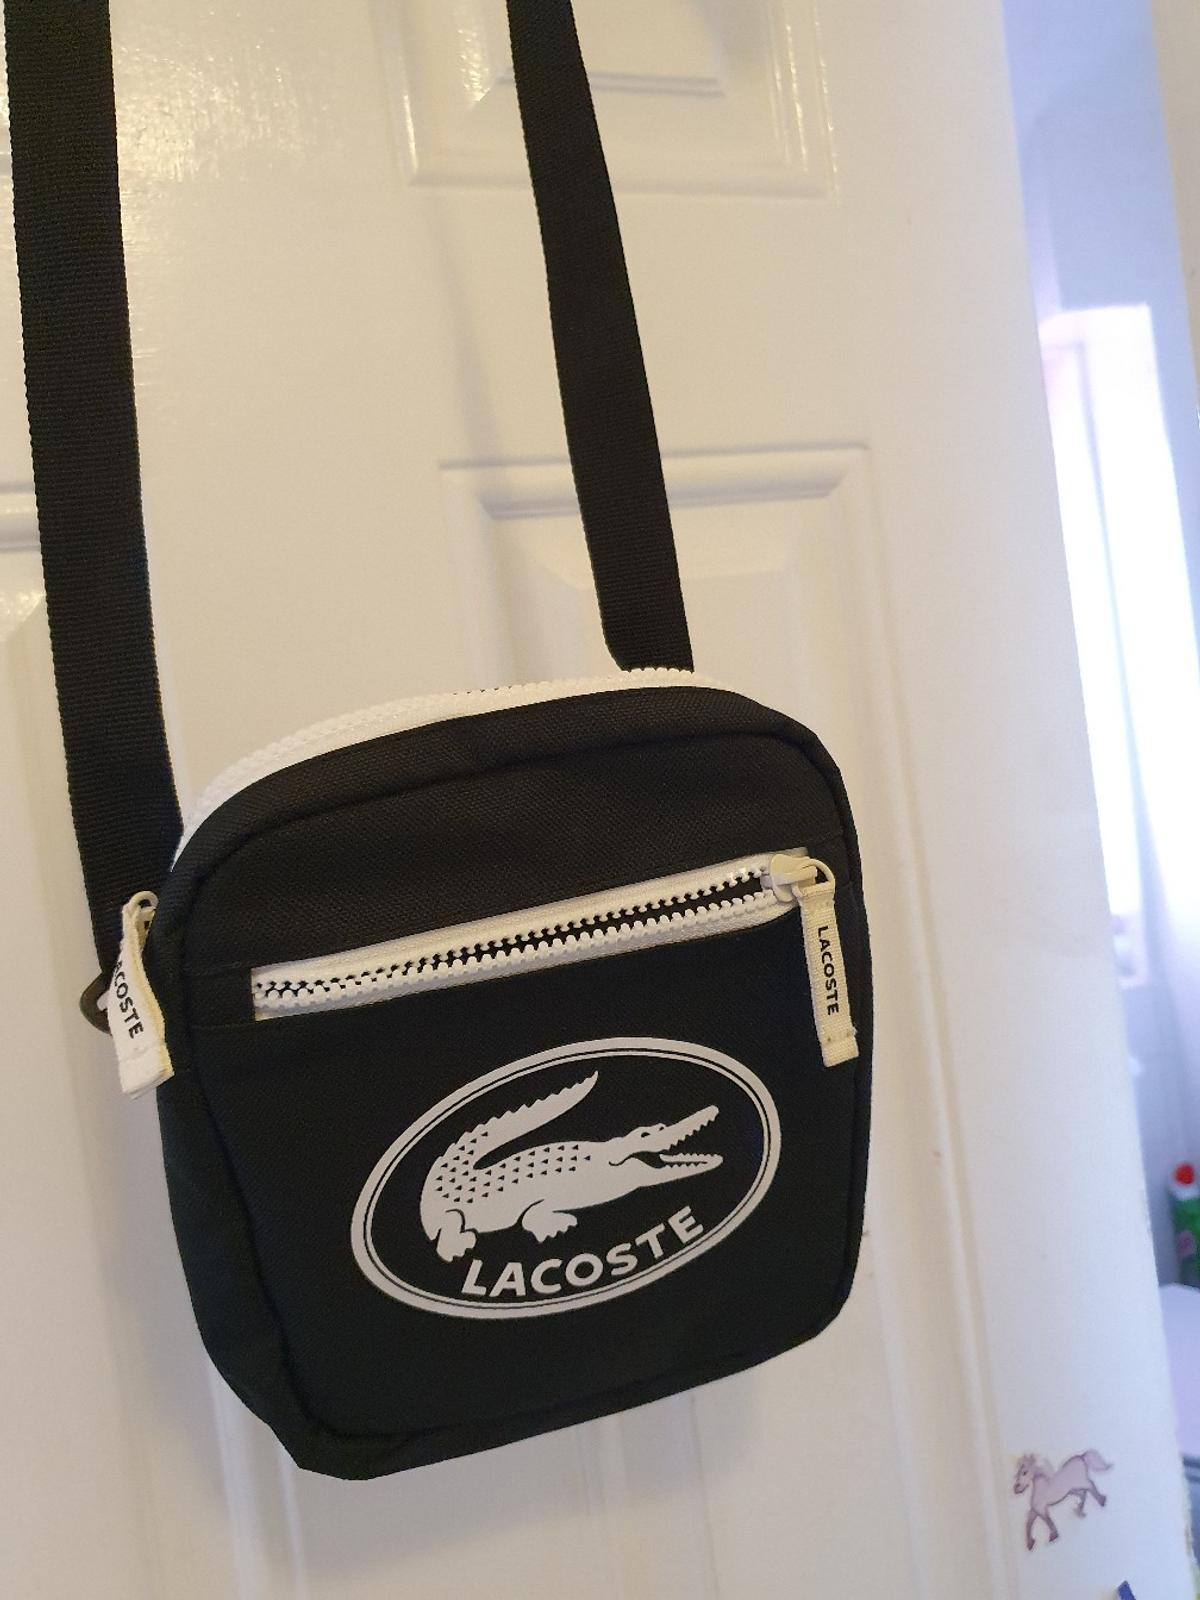 LACOSTE BAG NEW ANY QUESTIONS PLEASE ASK SORRY I DONT POST COLLECTION ONLY!